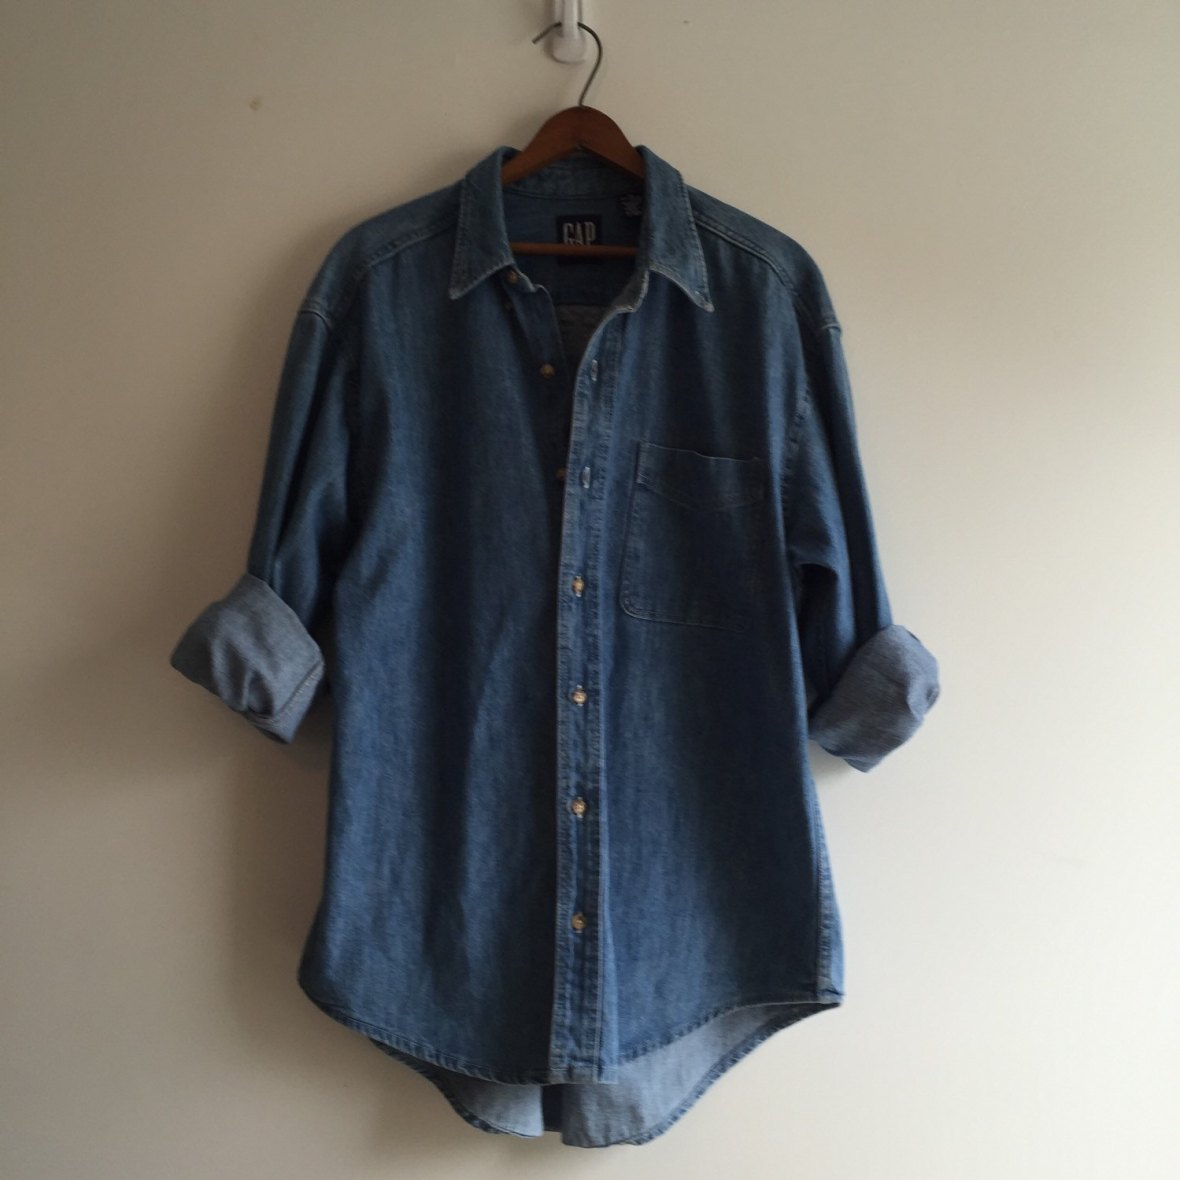 Vintage 80's Gap Chambray Denim Shirt by Vintspiration